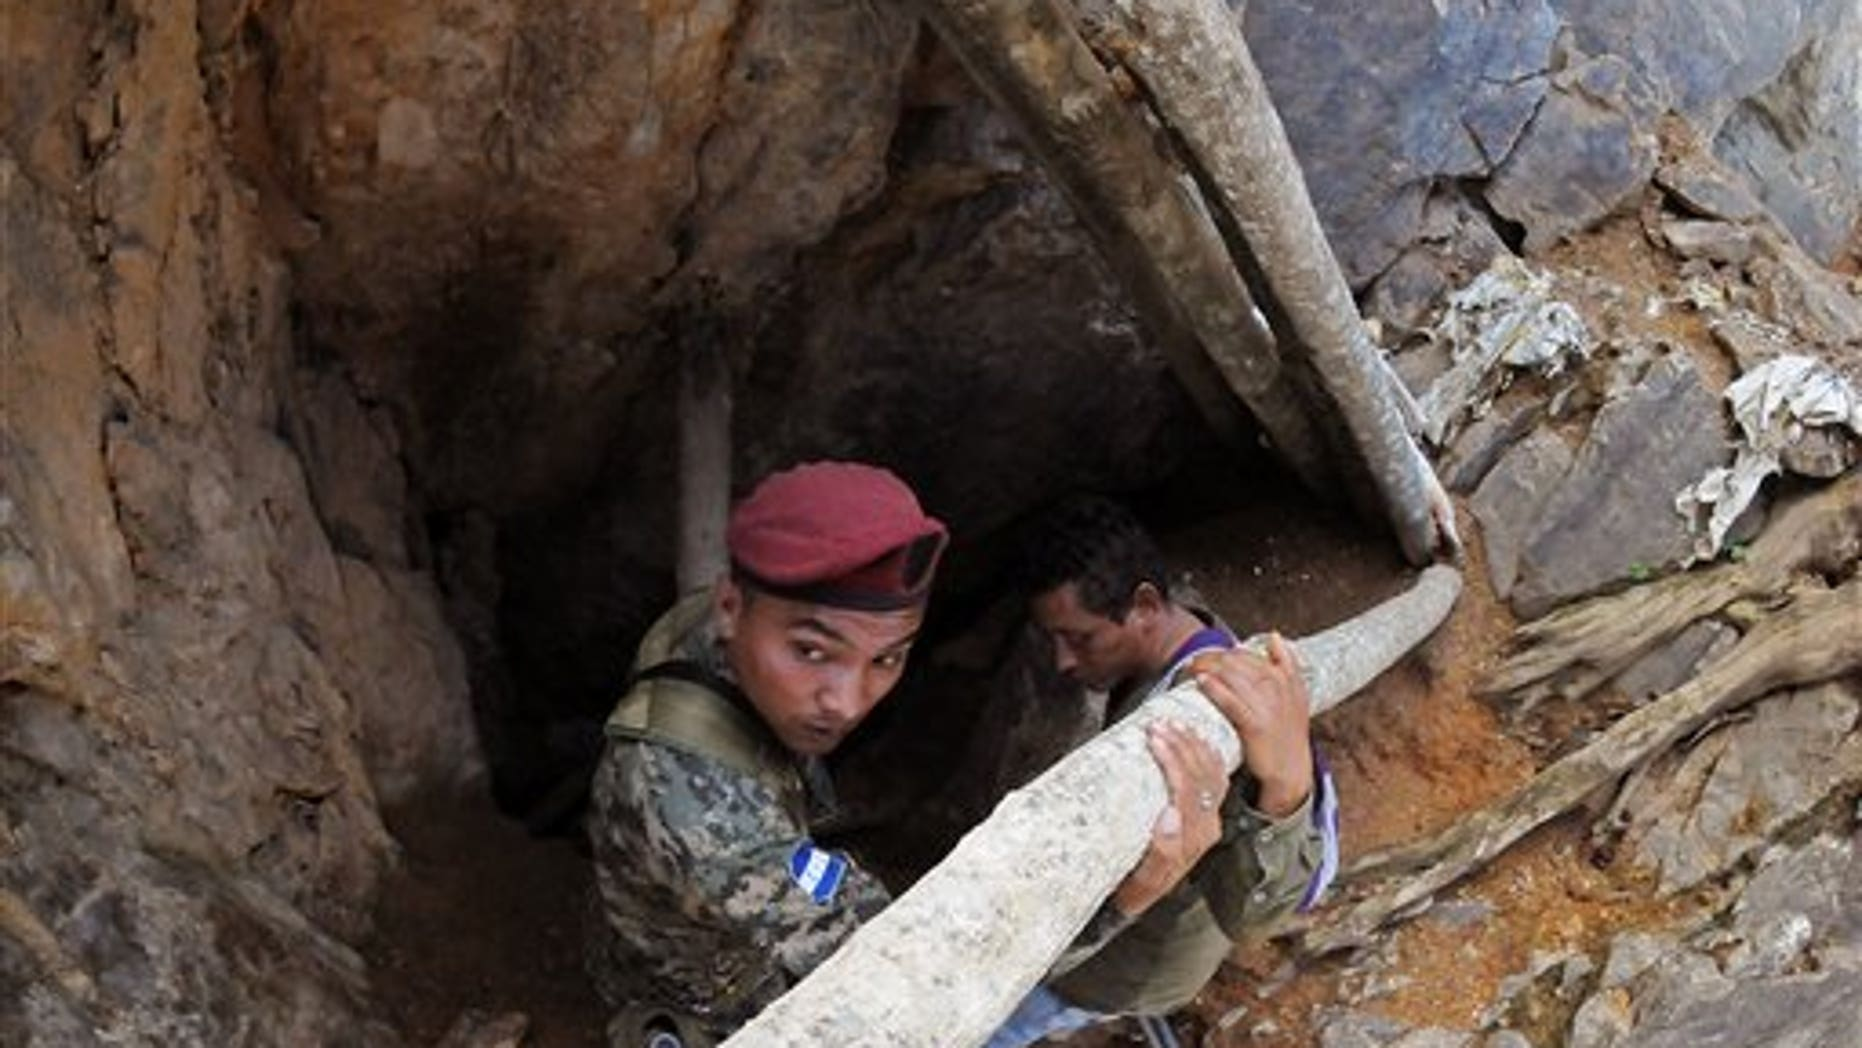 A soldier stands guard at the entrance of a collapsed gold mine where miners are trapped in San Juan Arriba, Choluteca in southern Honduras, Friday, July 4, 2014. Three miners were rescued Friday after spending more than two days trapped following a collapse at a small, wildcat gold mine. Eight others remain missing. (AP Photo/Fernando Antonio)